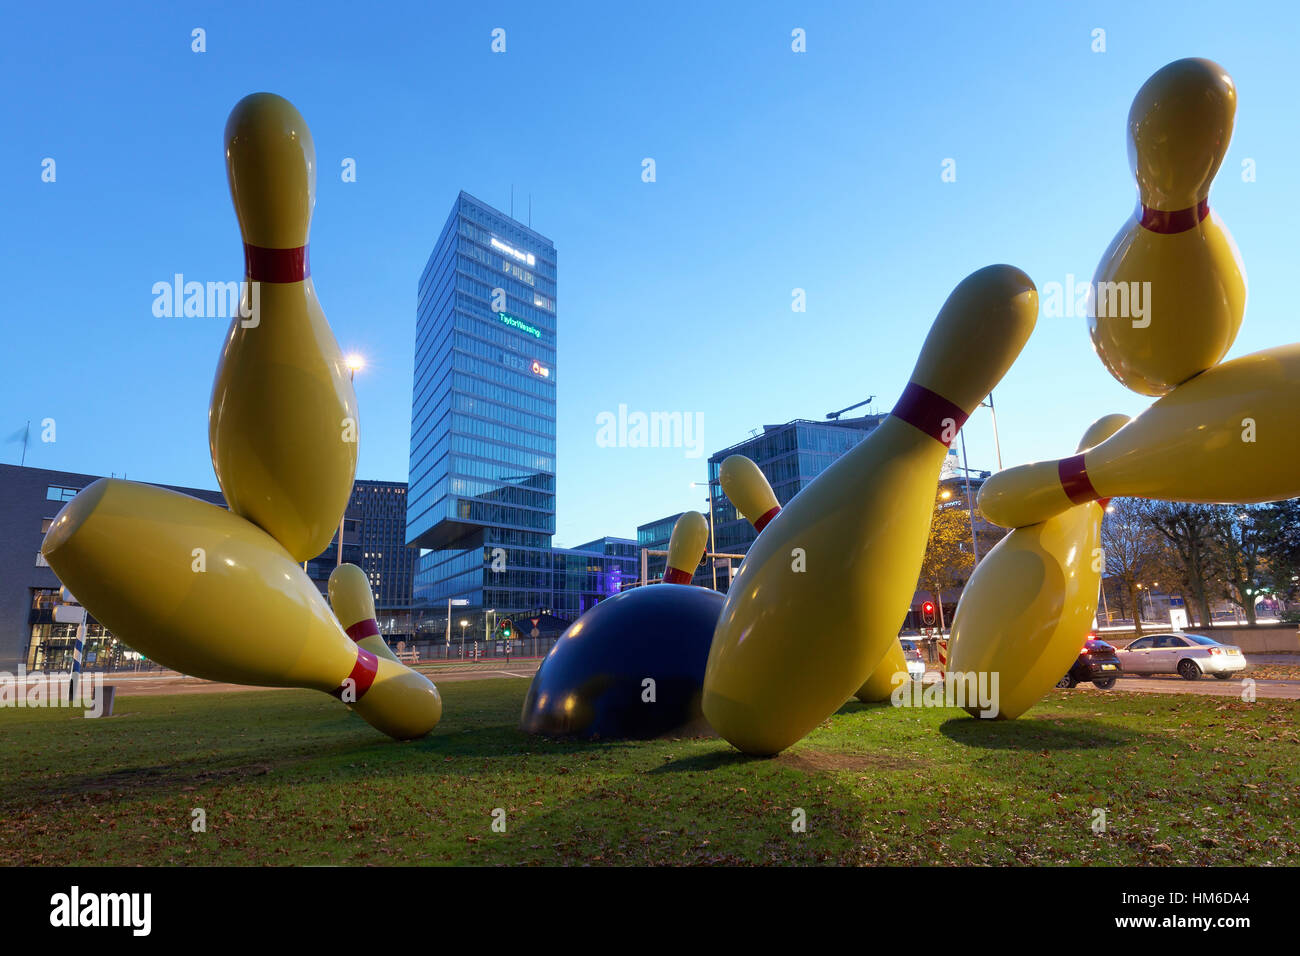 Flying Pins sculpture, pins are knocked down by bowling ball, artists Claes Oldenburg and Coosje van Bruggen, Pop - Stock Image